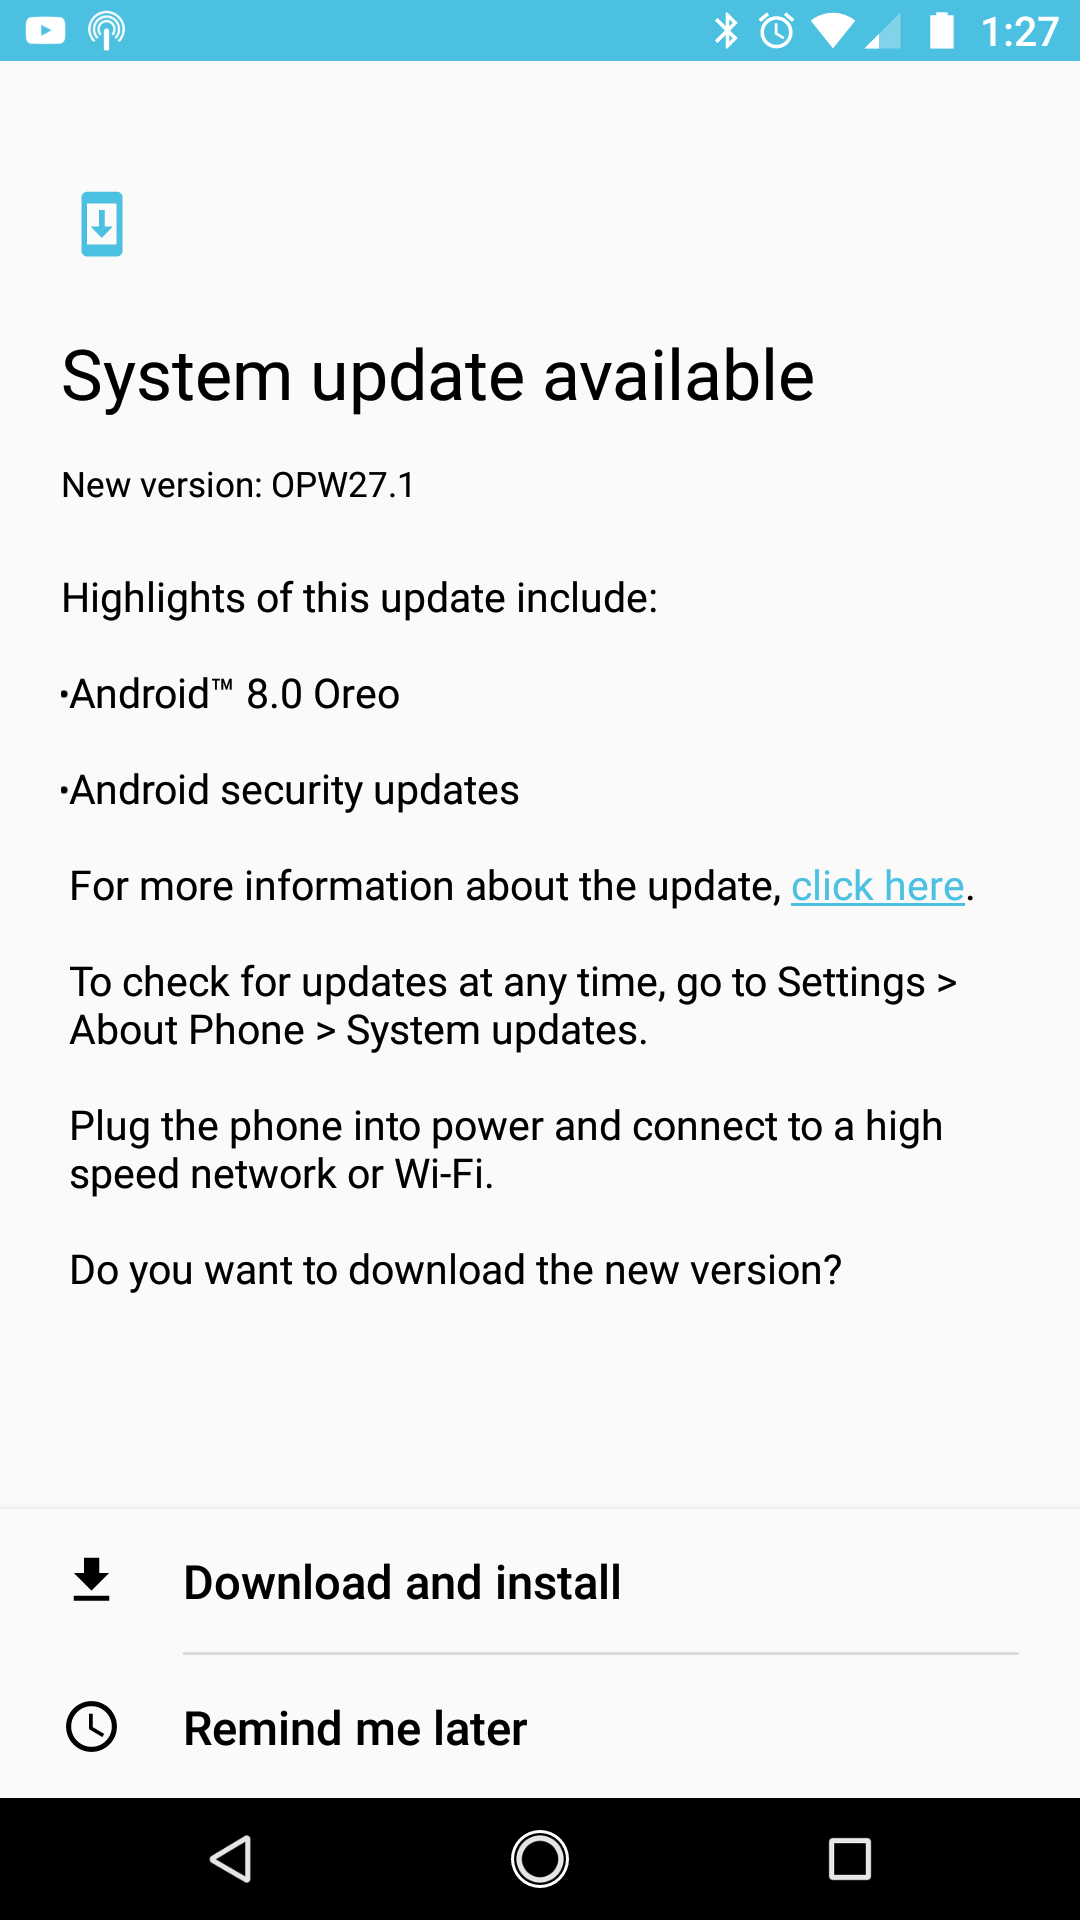 moto x4 android one android 8.0 oreo update